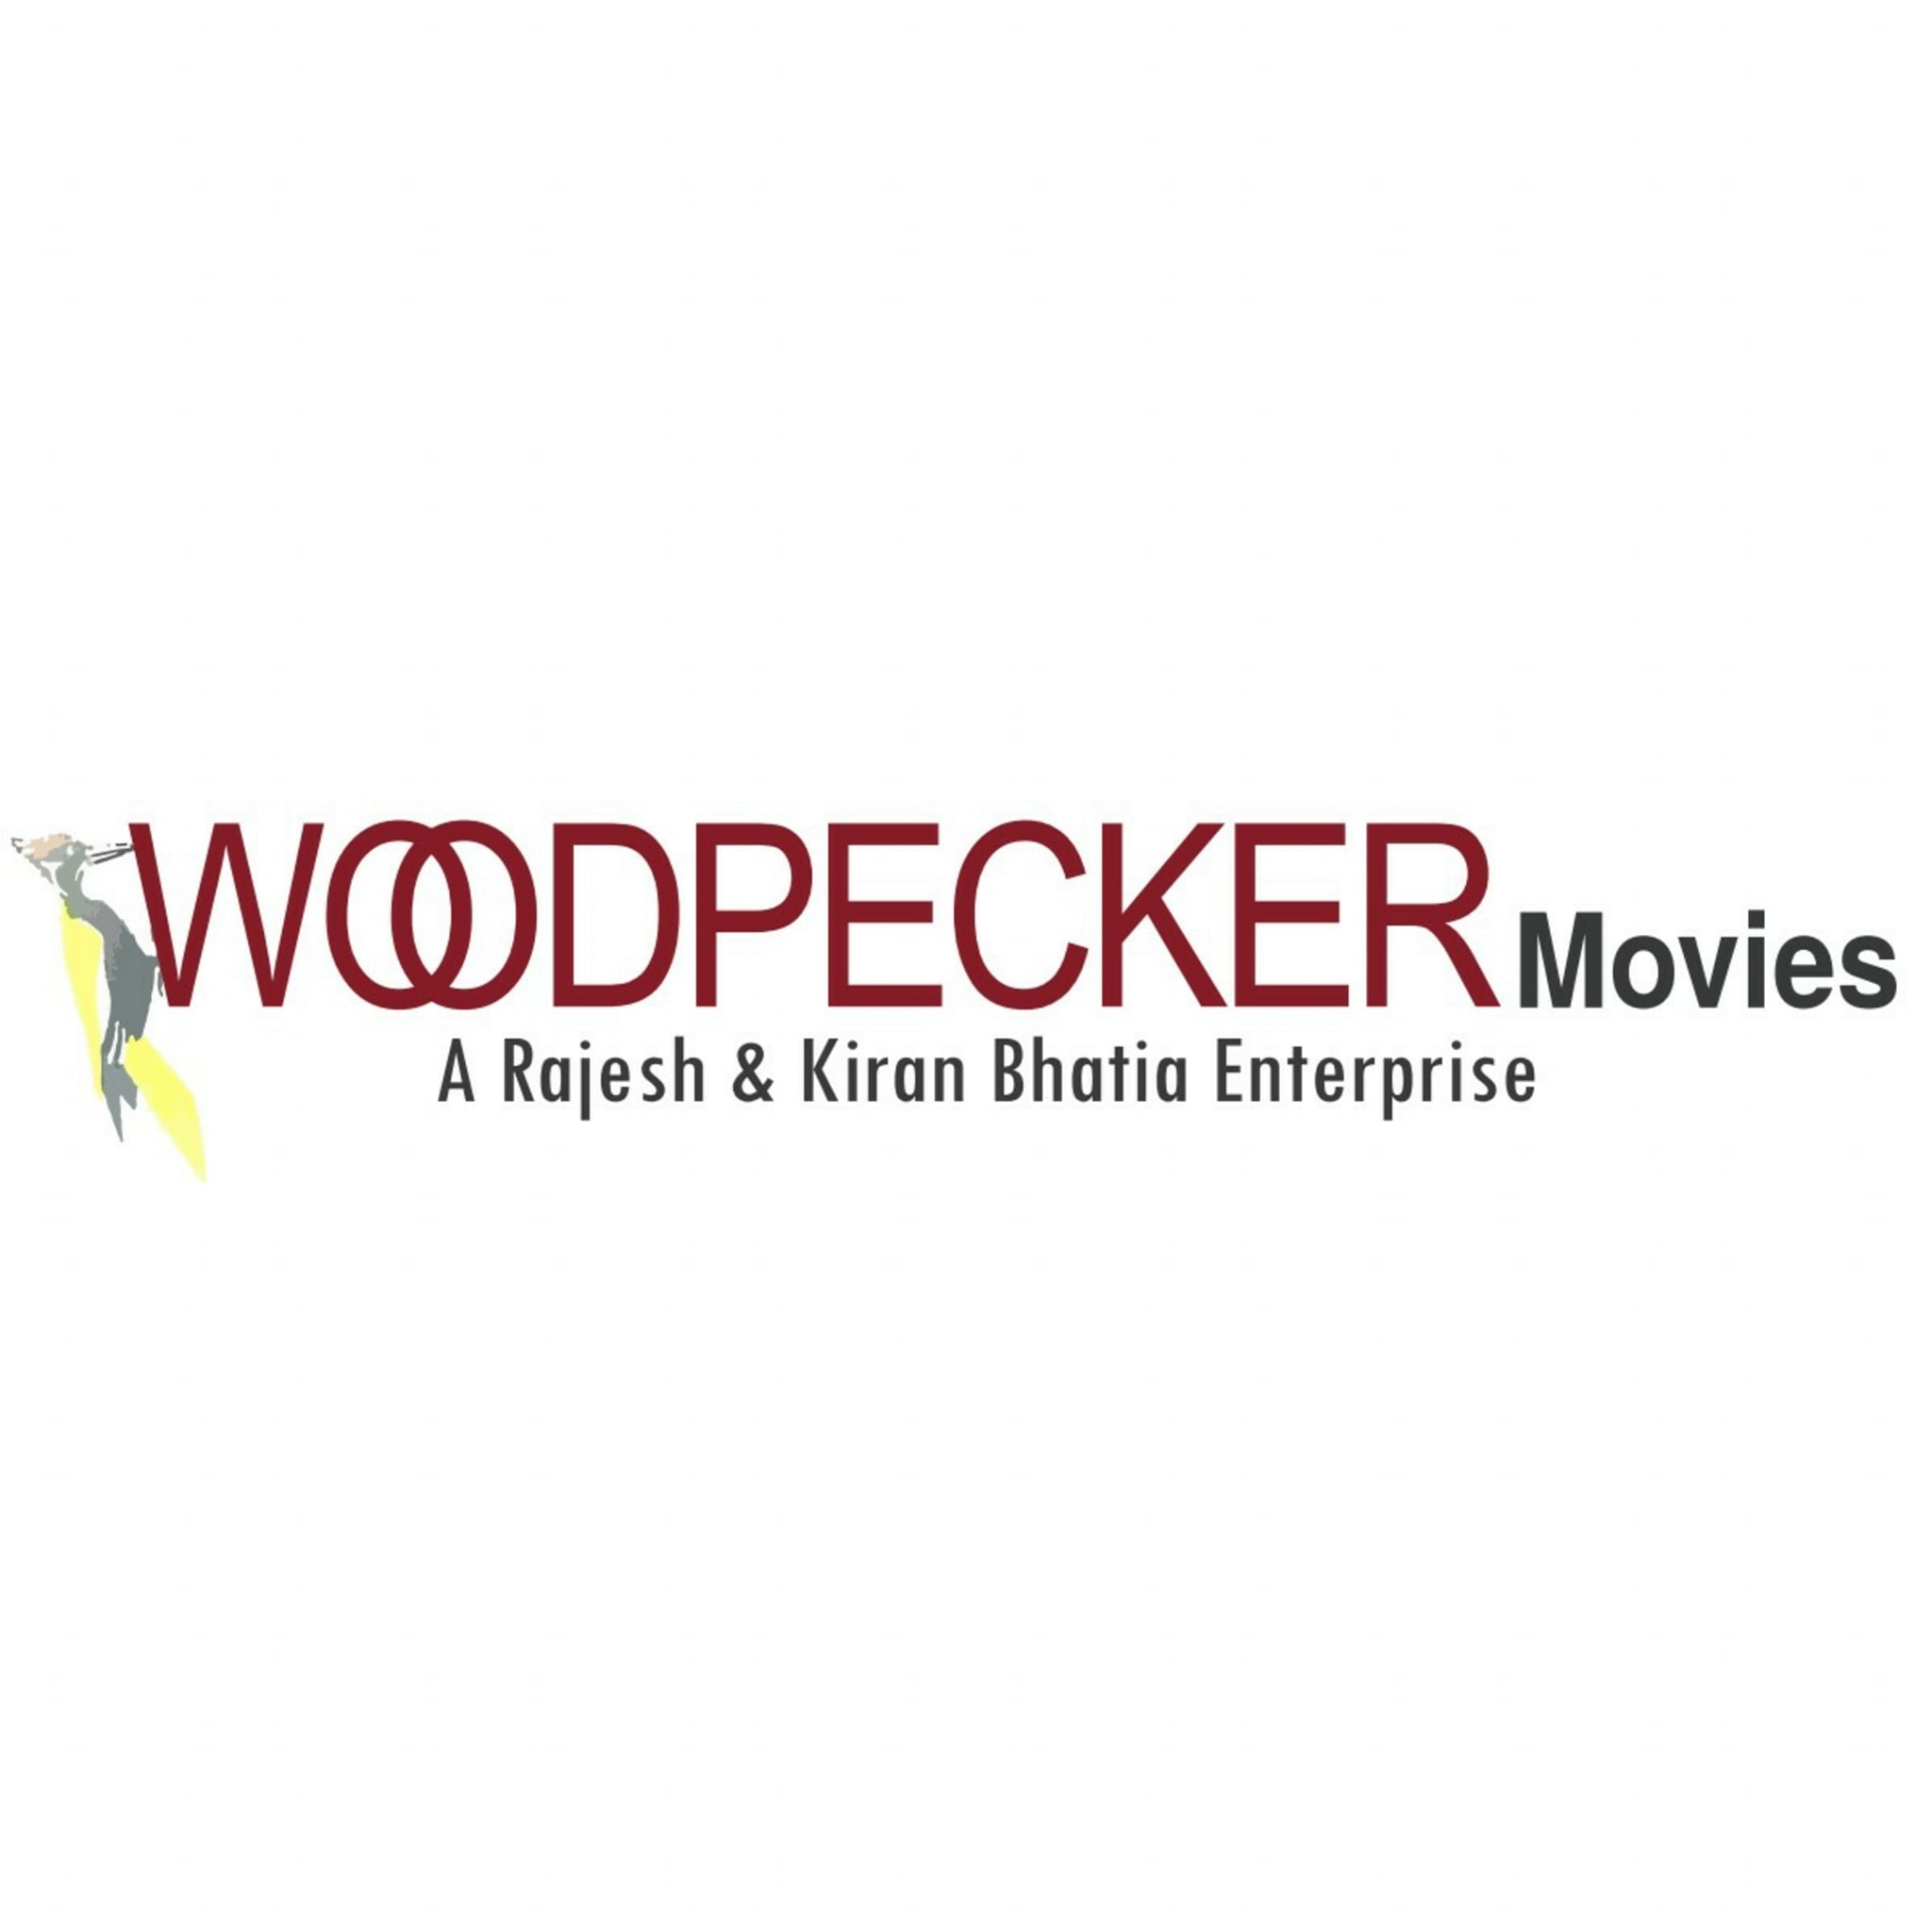 Woodpecker Movies Private Limited